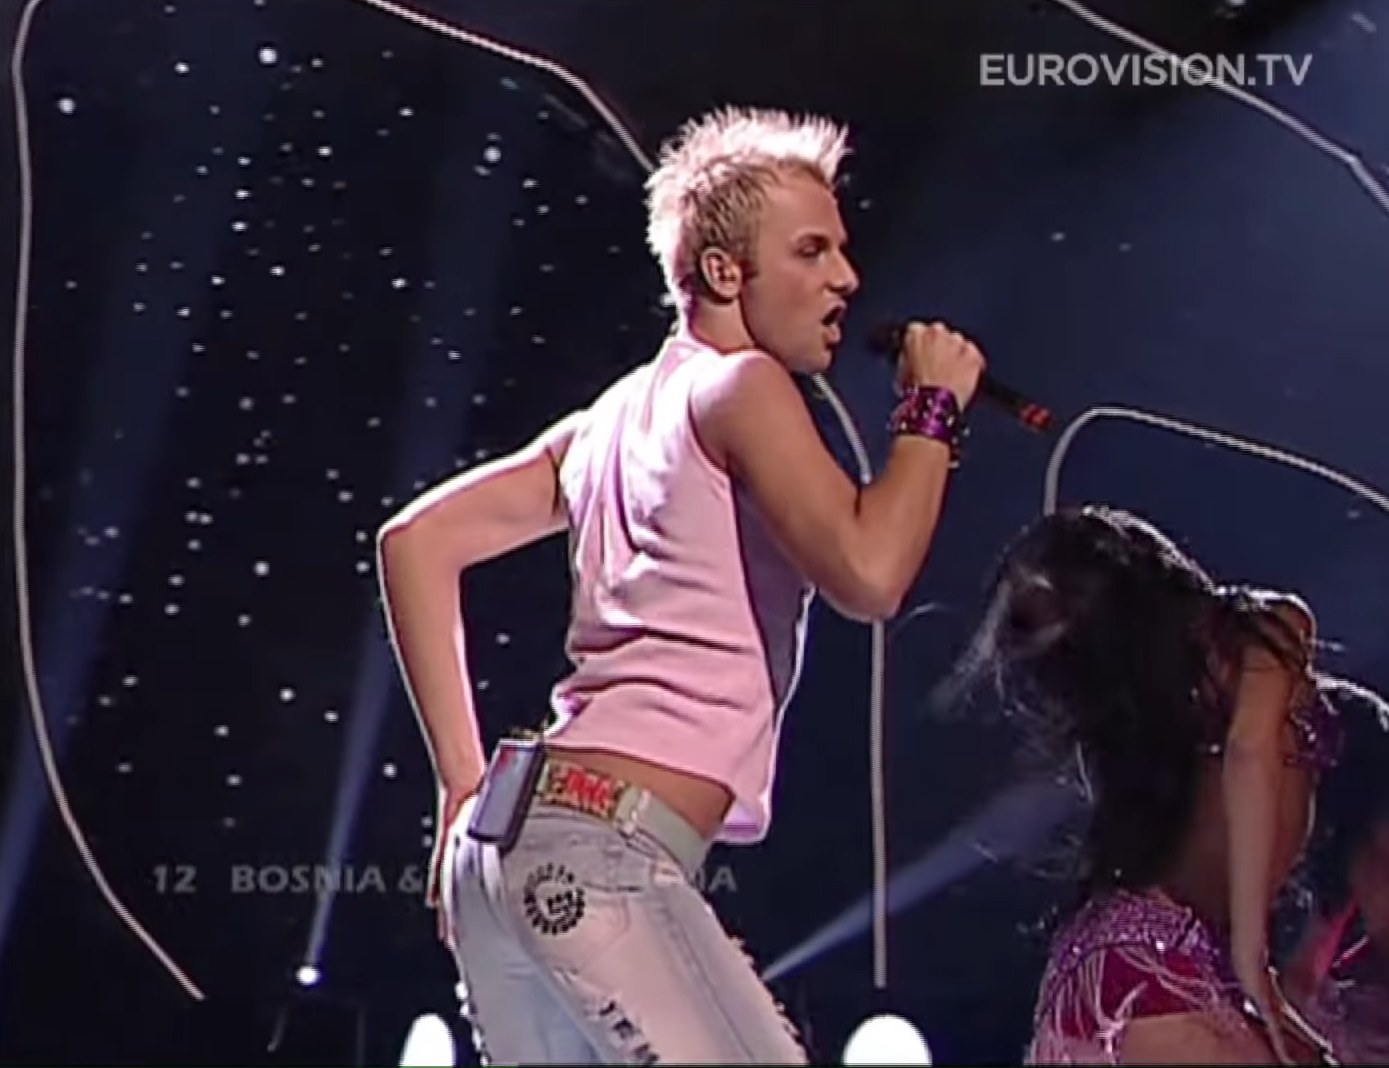 Deen-In-The-Disco-Bosnia-And-Herzegovina-2004-Eurovision-Song-Contest-0-40-screenshot.png